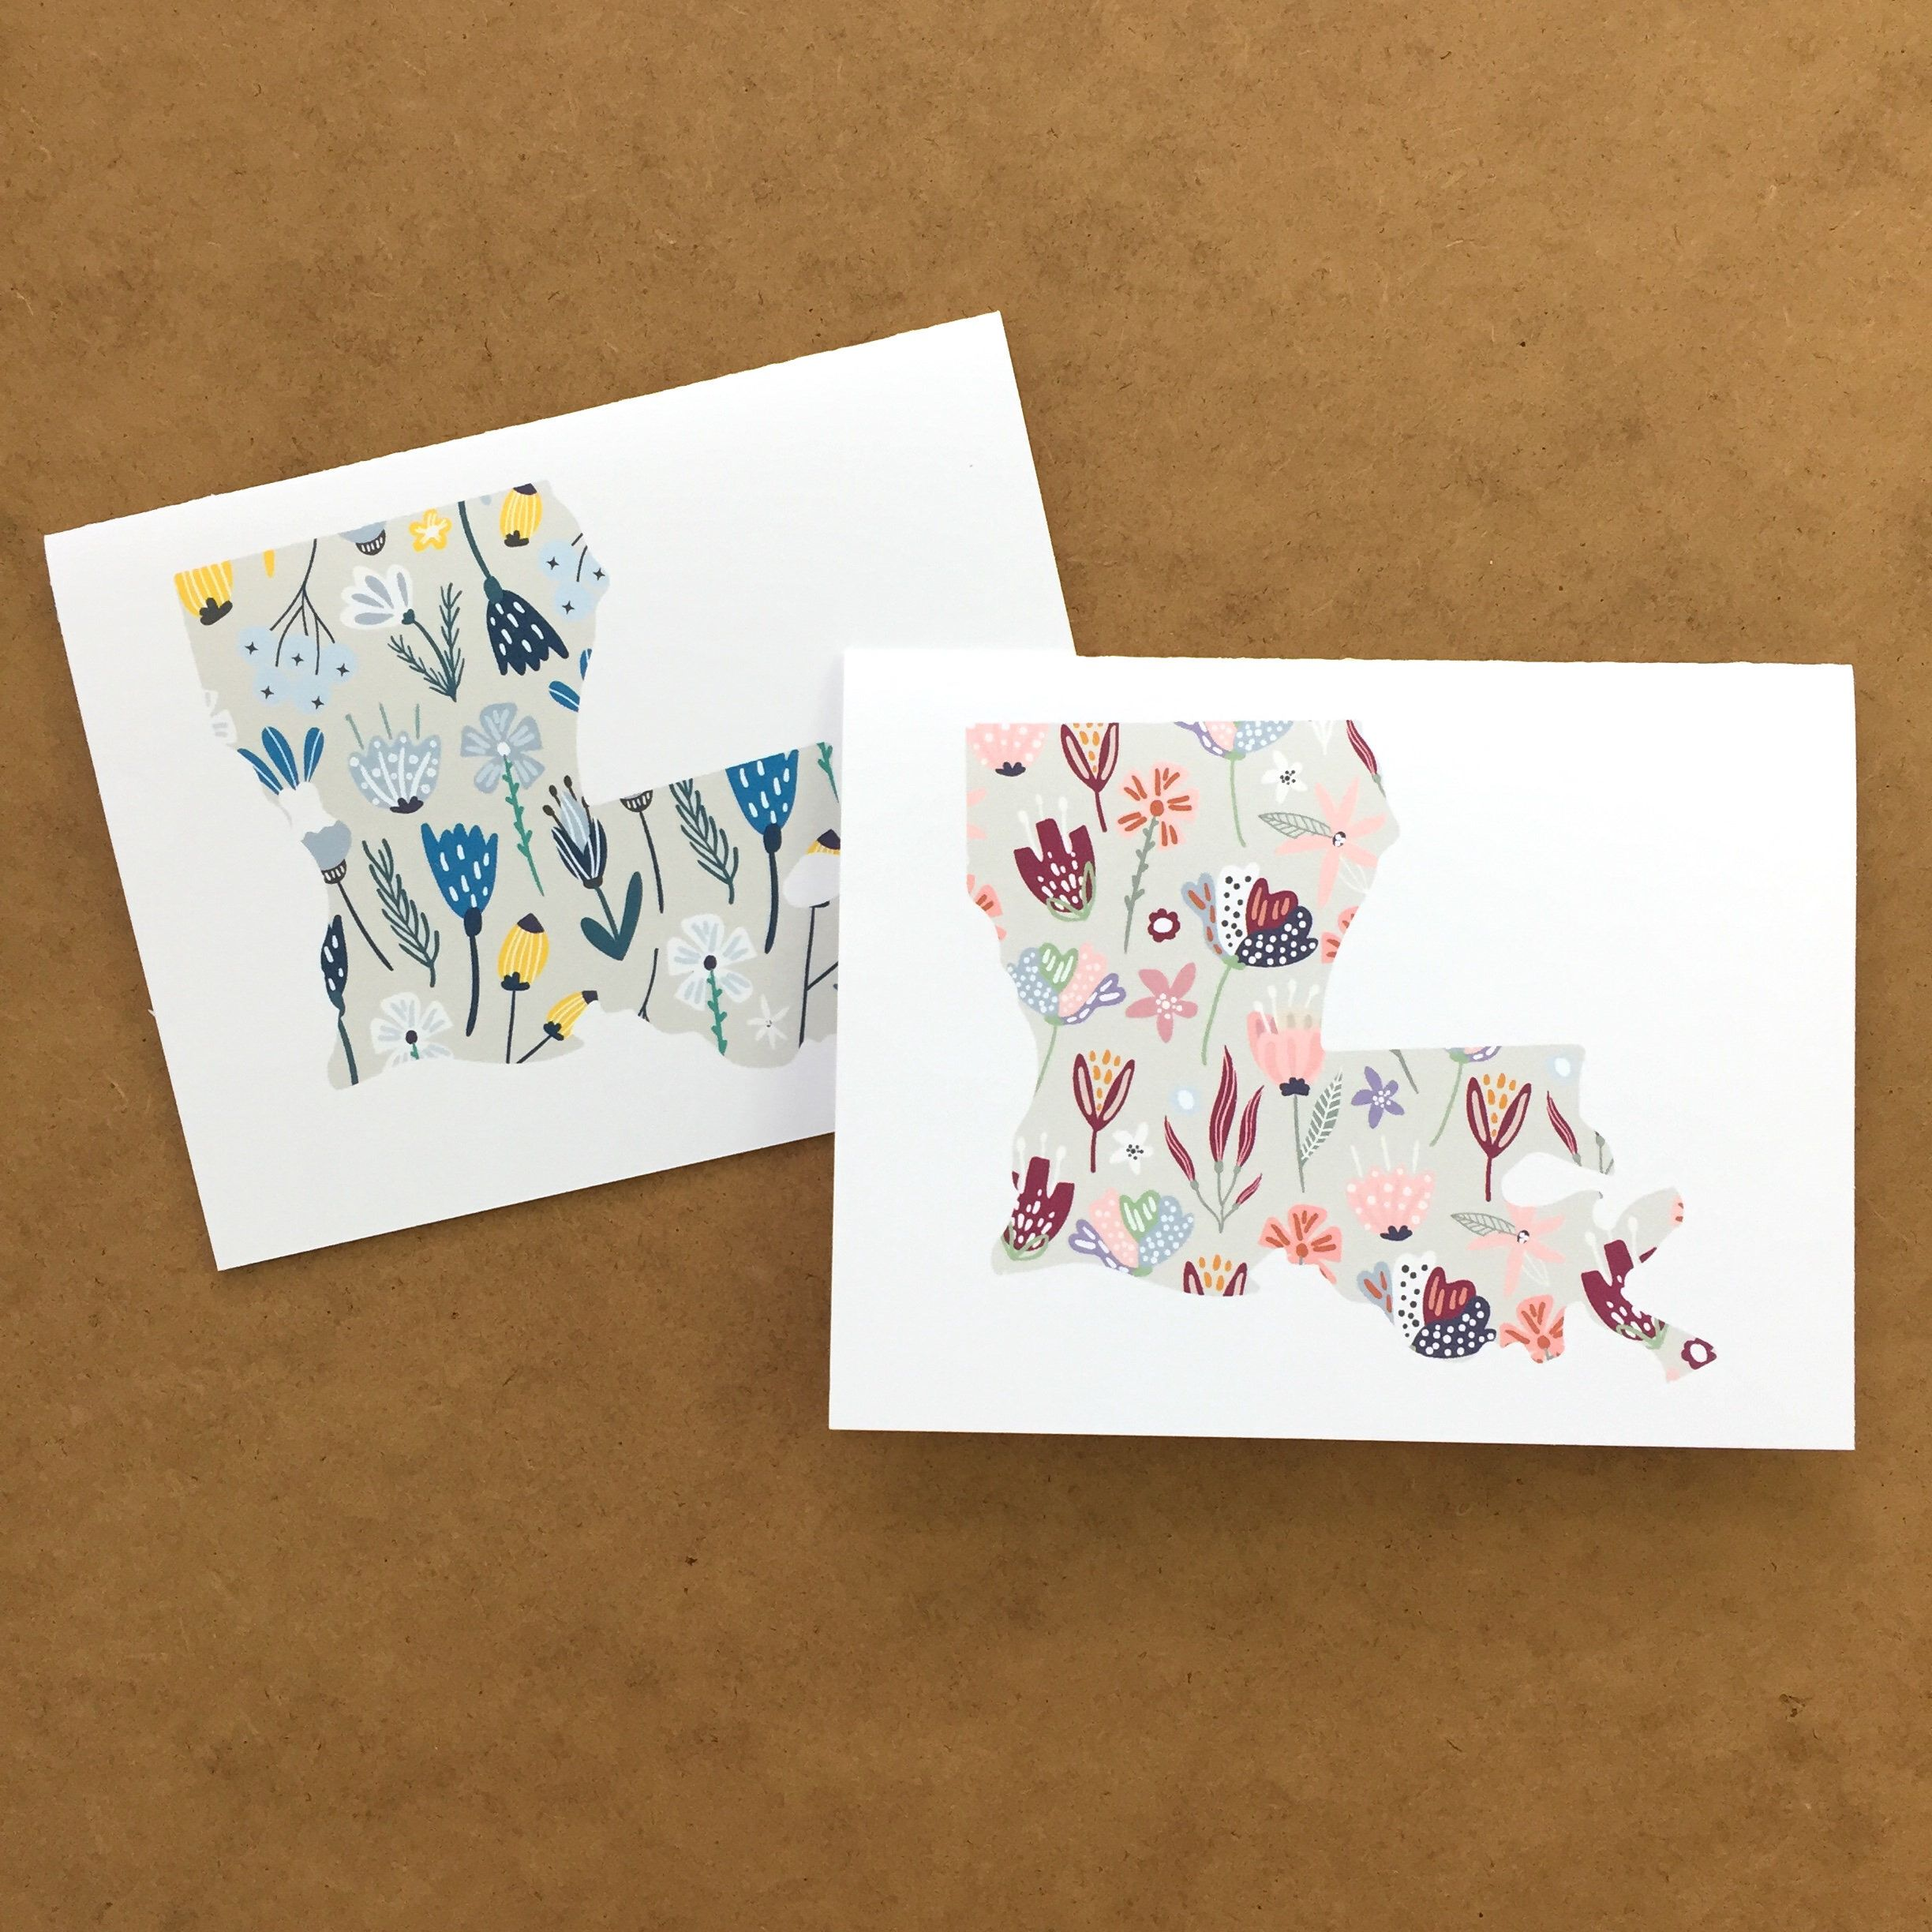 Louisiana Stationary With Floral Print Louisiana Gift New Orleans